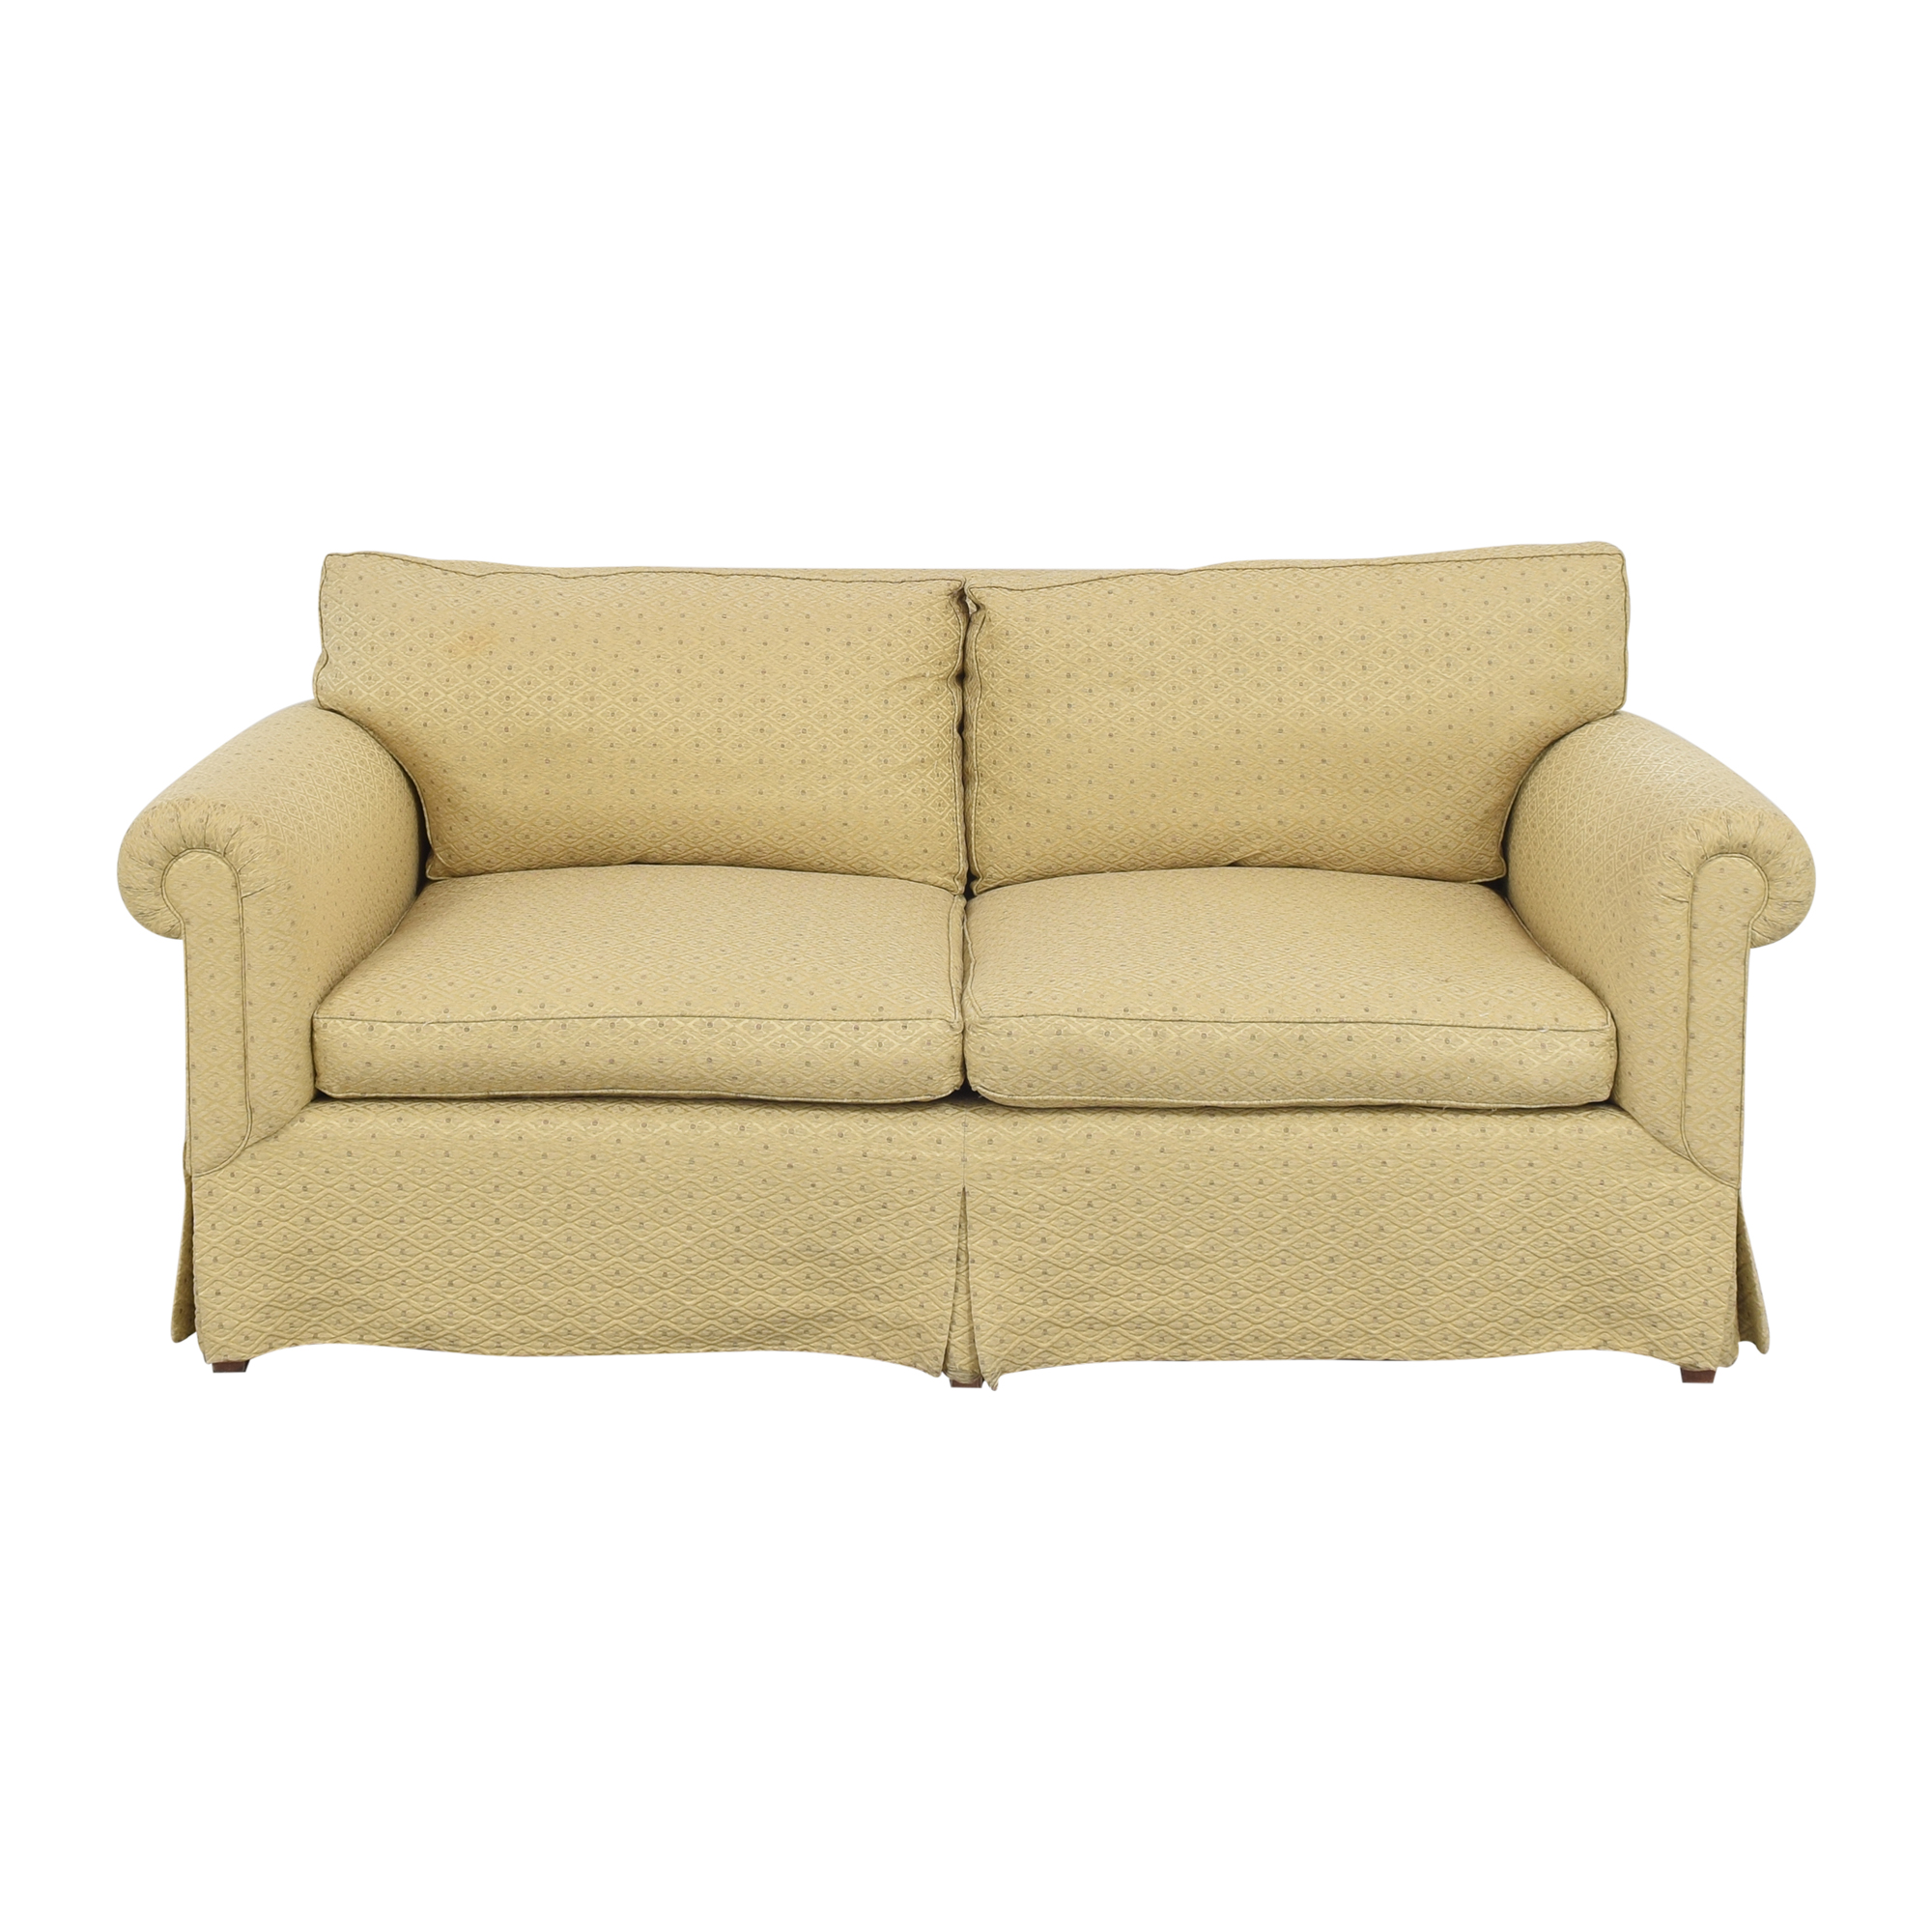 buy  Roll Arm Two Cushion Sofa online